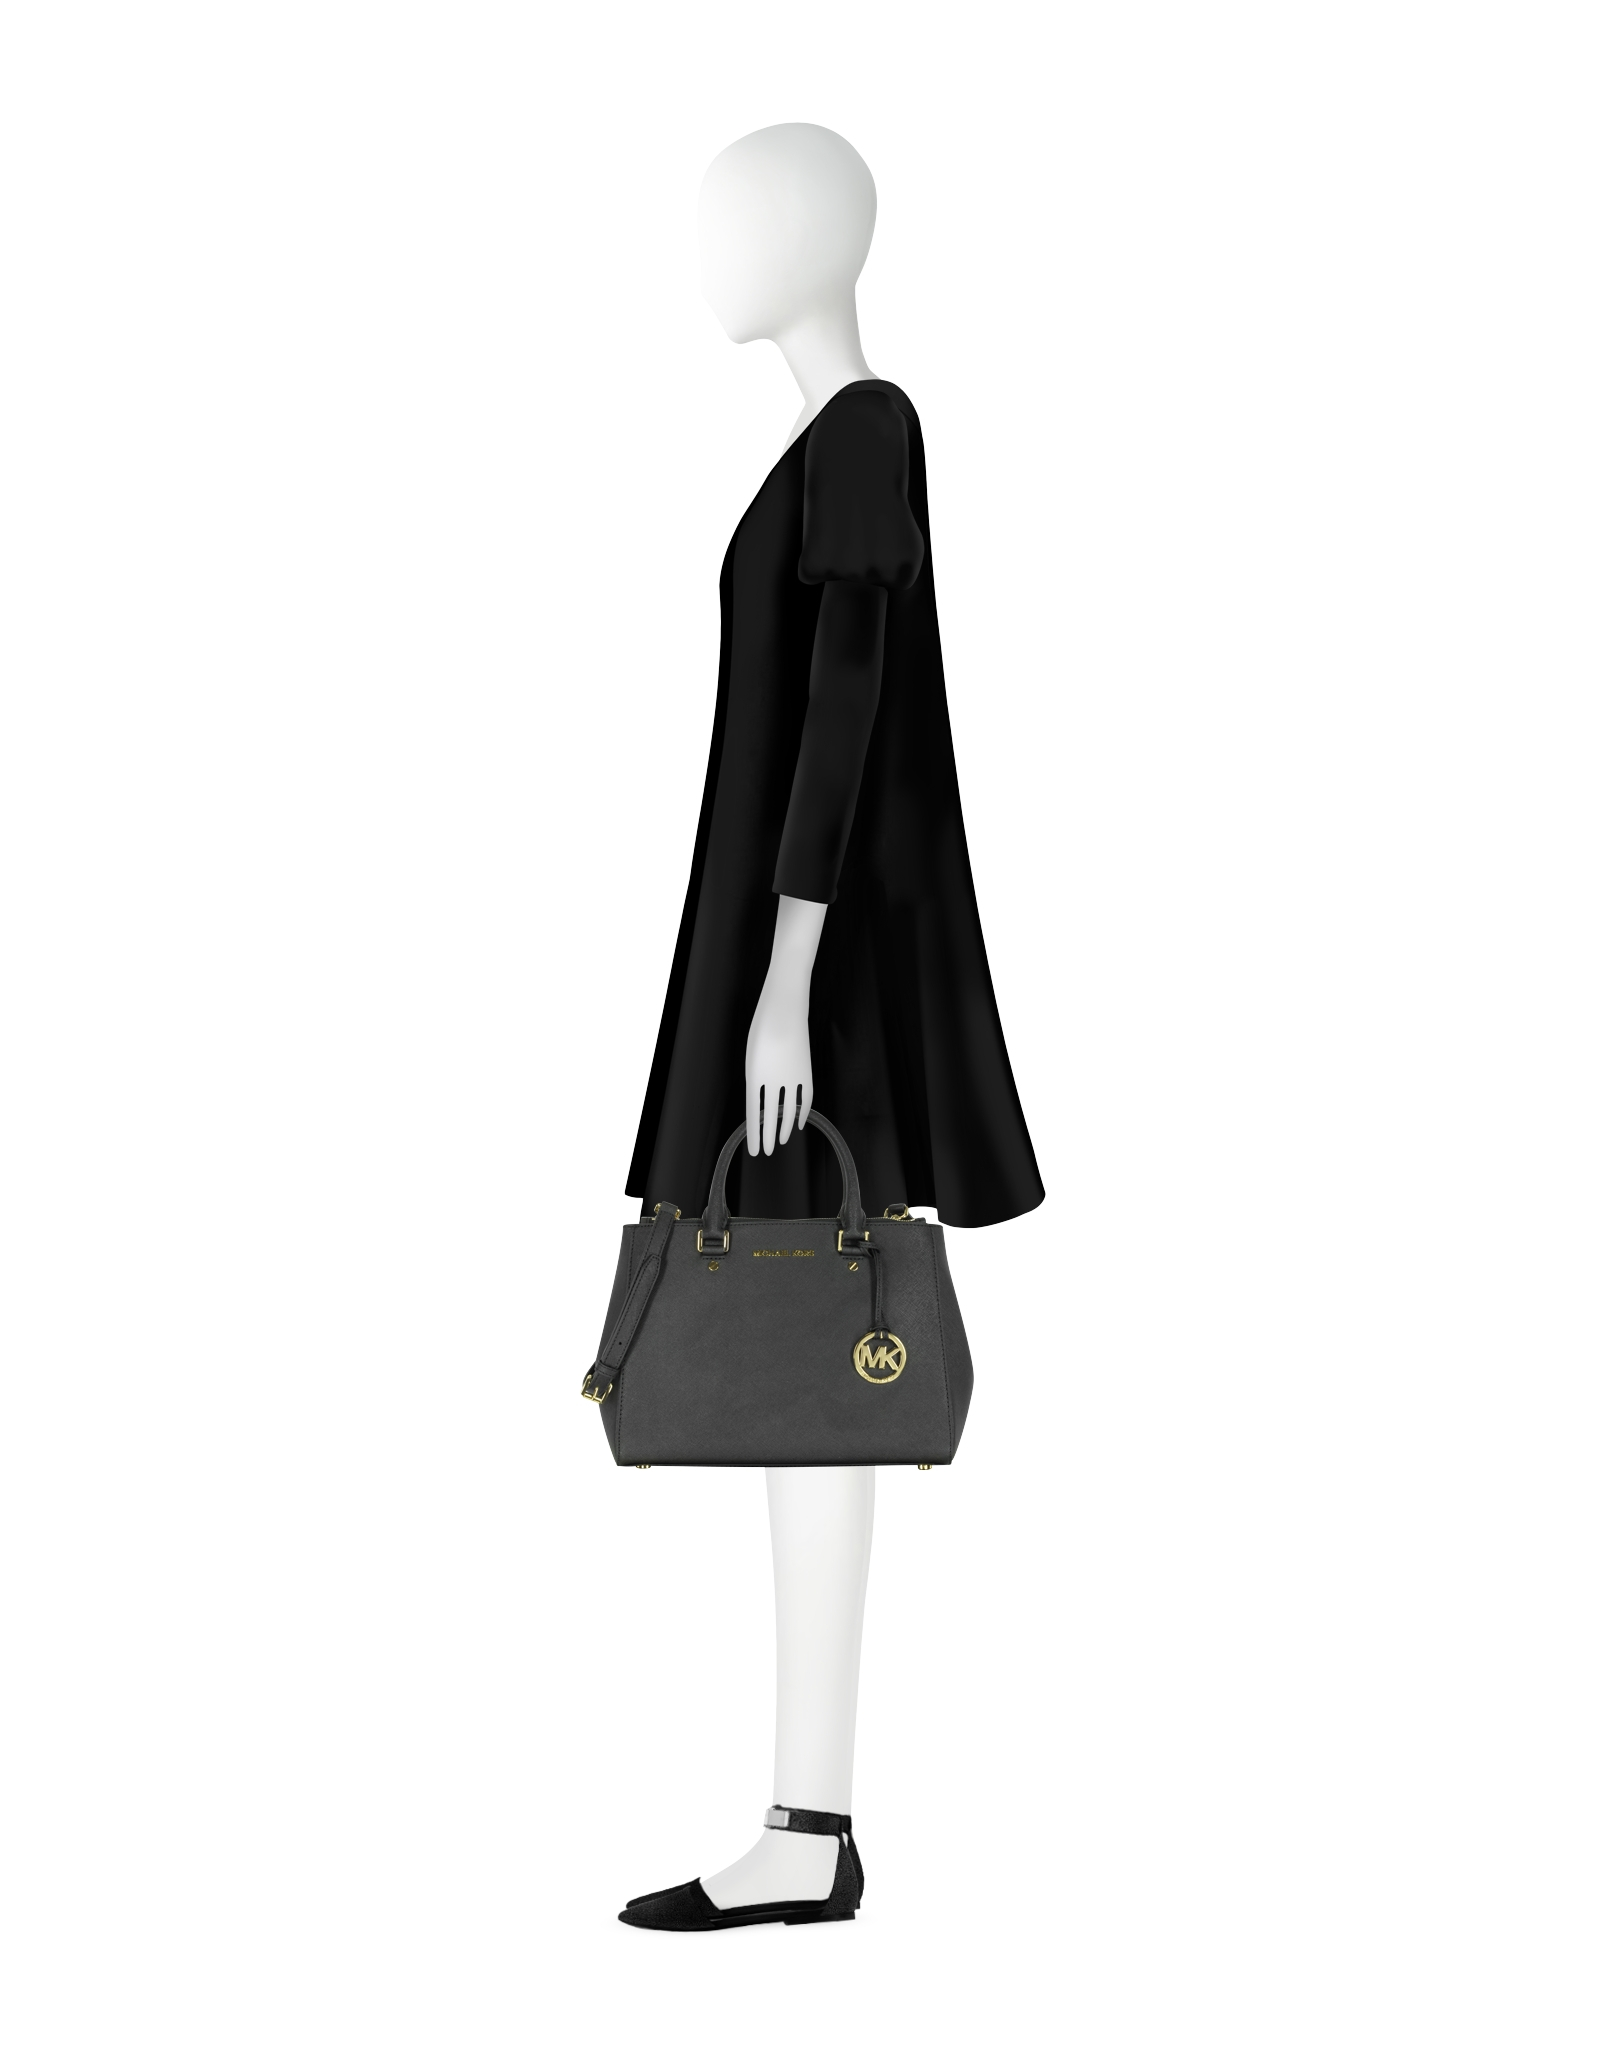 4cb4d39a8549 ... wholesale michael kors sutton medium saffiano leather satchel bag in  black lyst 0d143 d2845